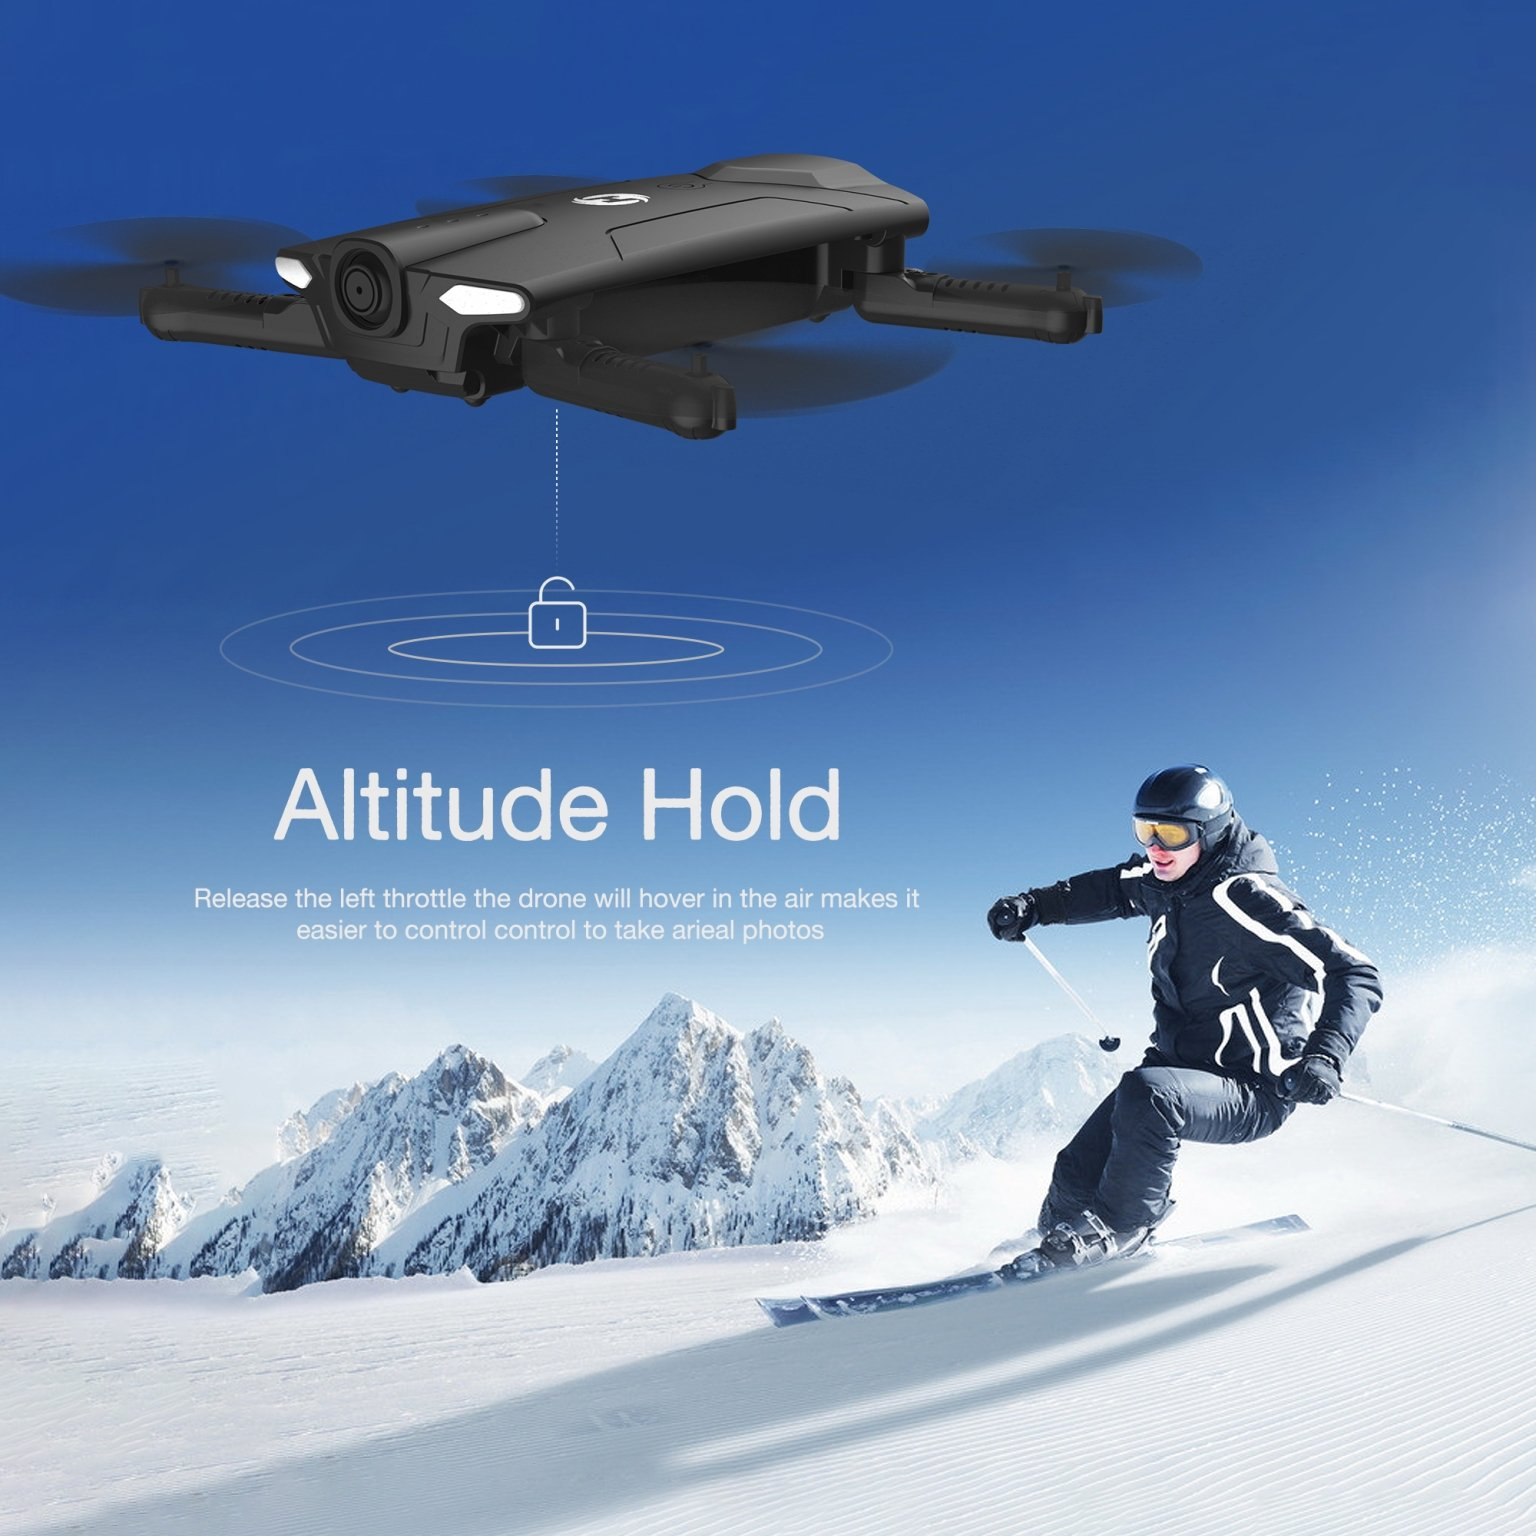 Holy Stone HS160 Shadow FPV RC Drone with 720P HD Wi-Fi Camera Live Video Feed 2.4GHz 6-Axis Gyro Quadcopter for Kids & Beginners - Altitude Hold, One Key Start, Foldable Arms,Bonus Battery by Holy Stone (Image #5)